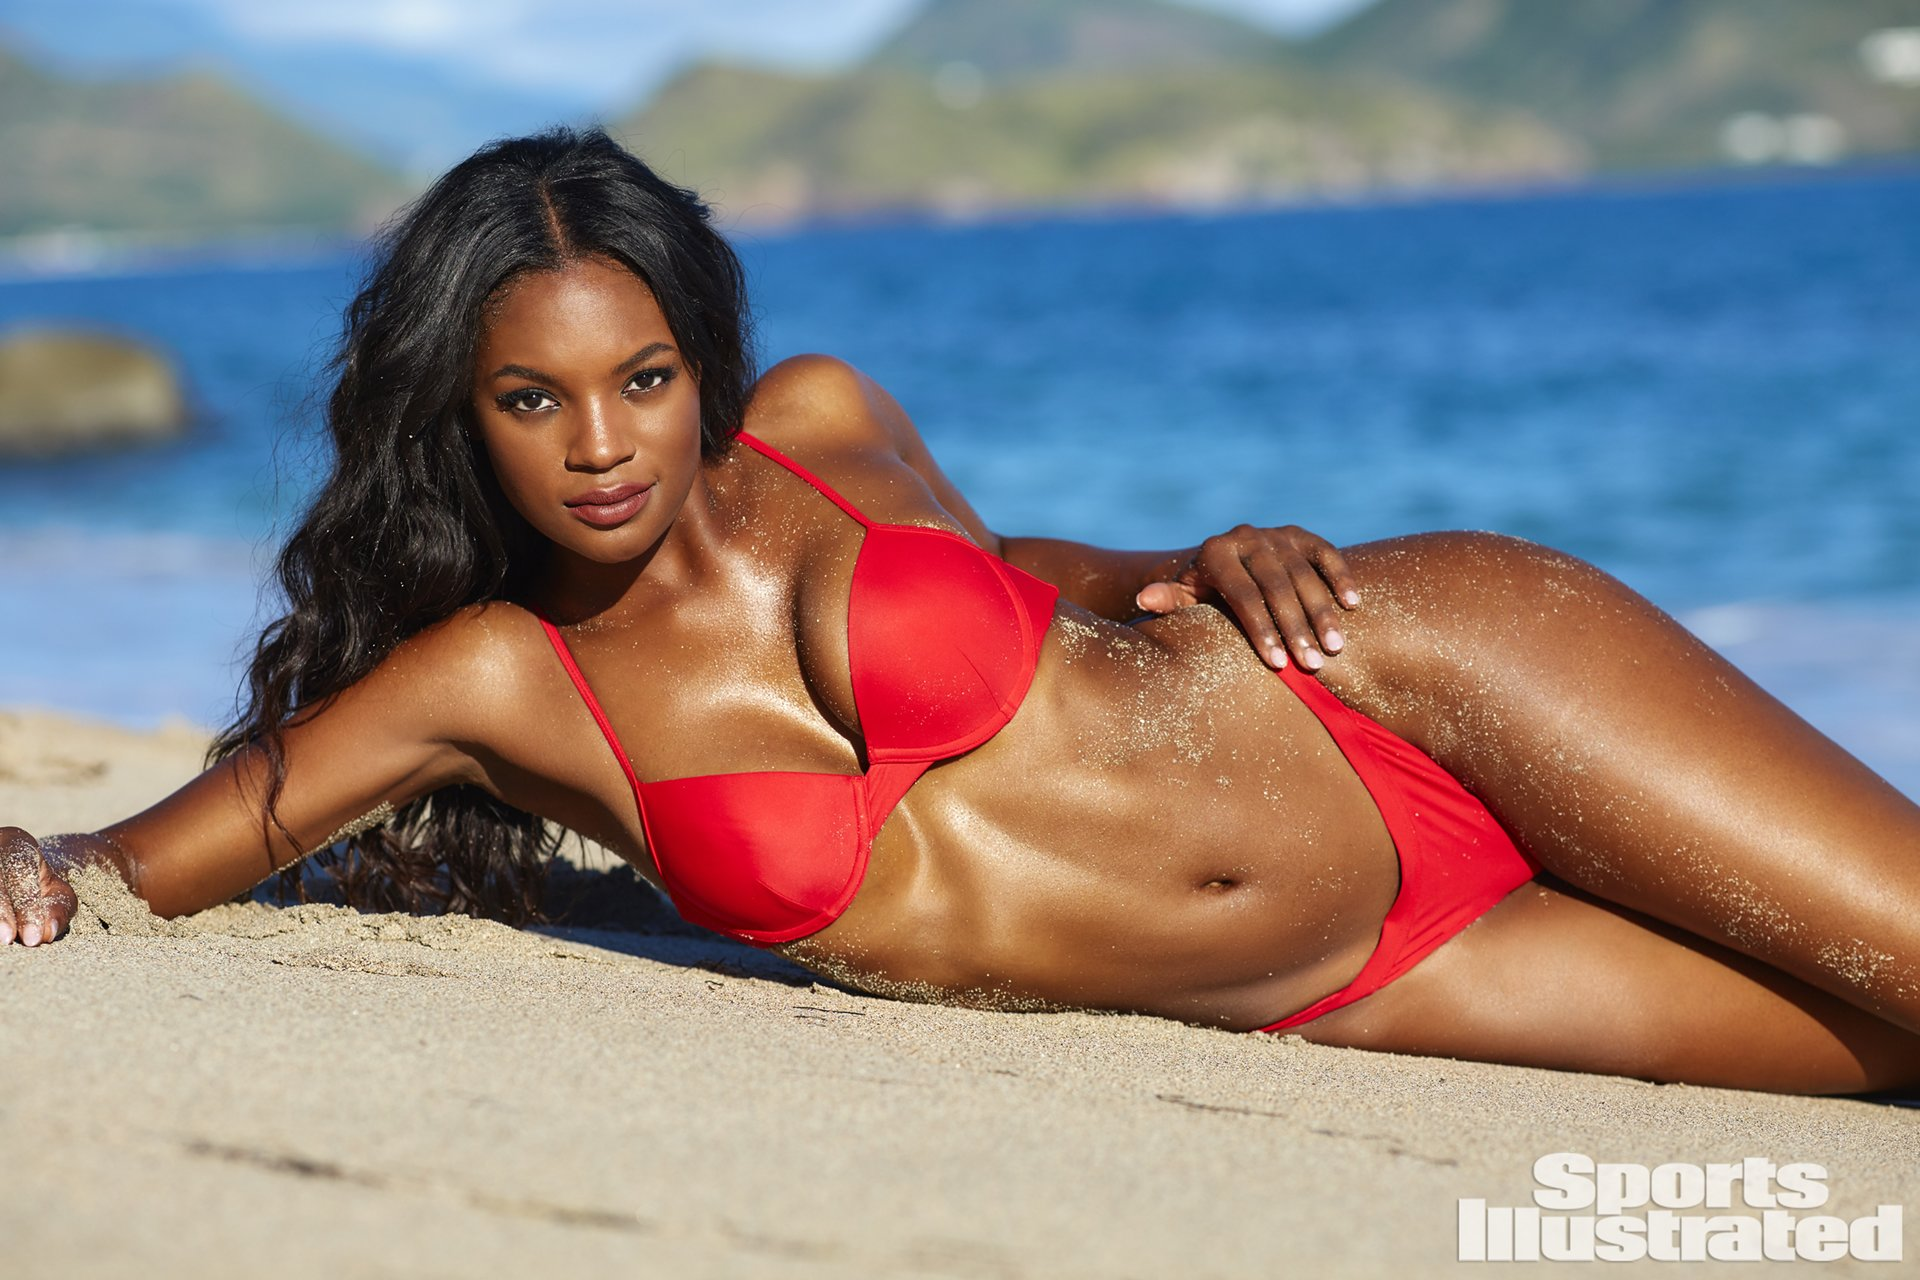 Sports Illustrated Swimsuit Issue 2018 (14).jpg